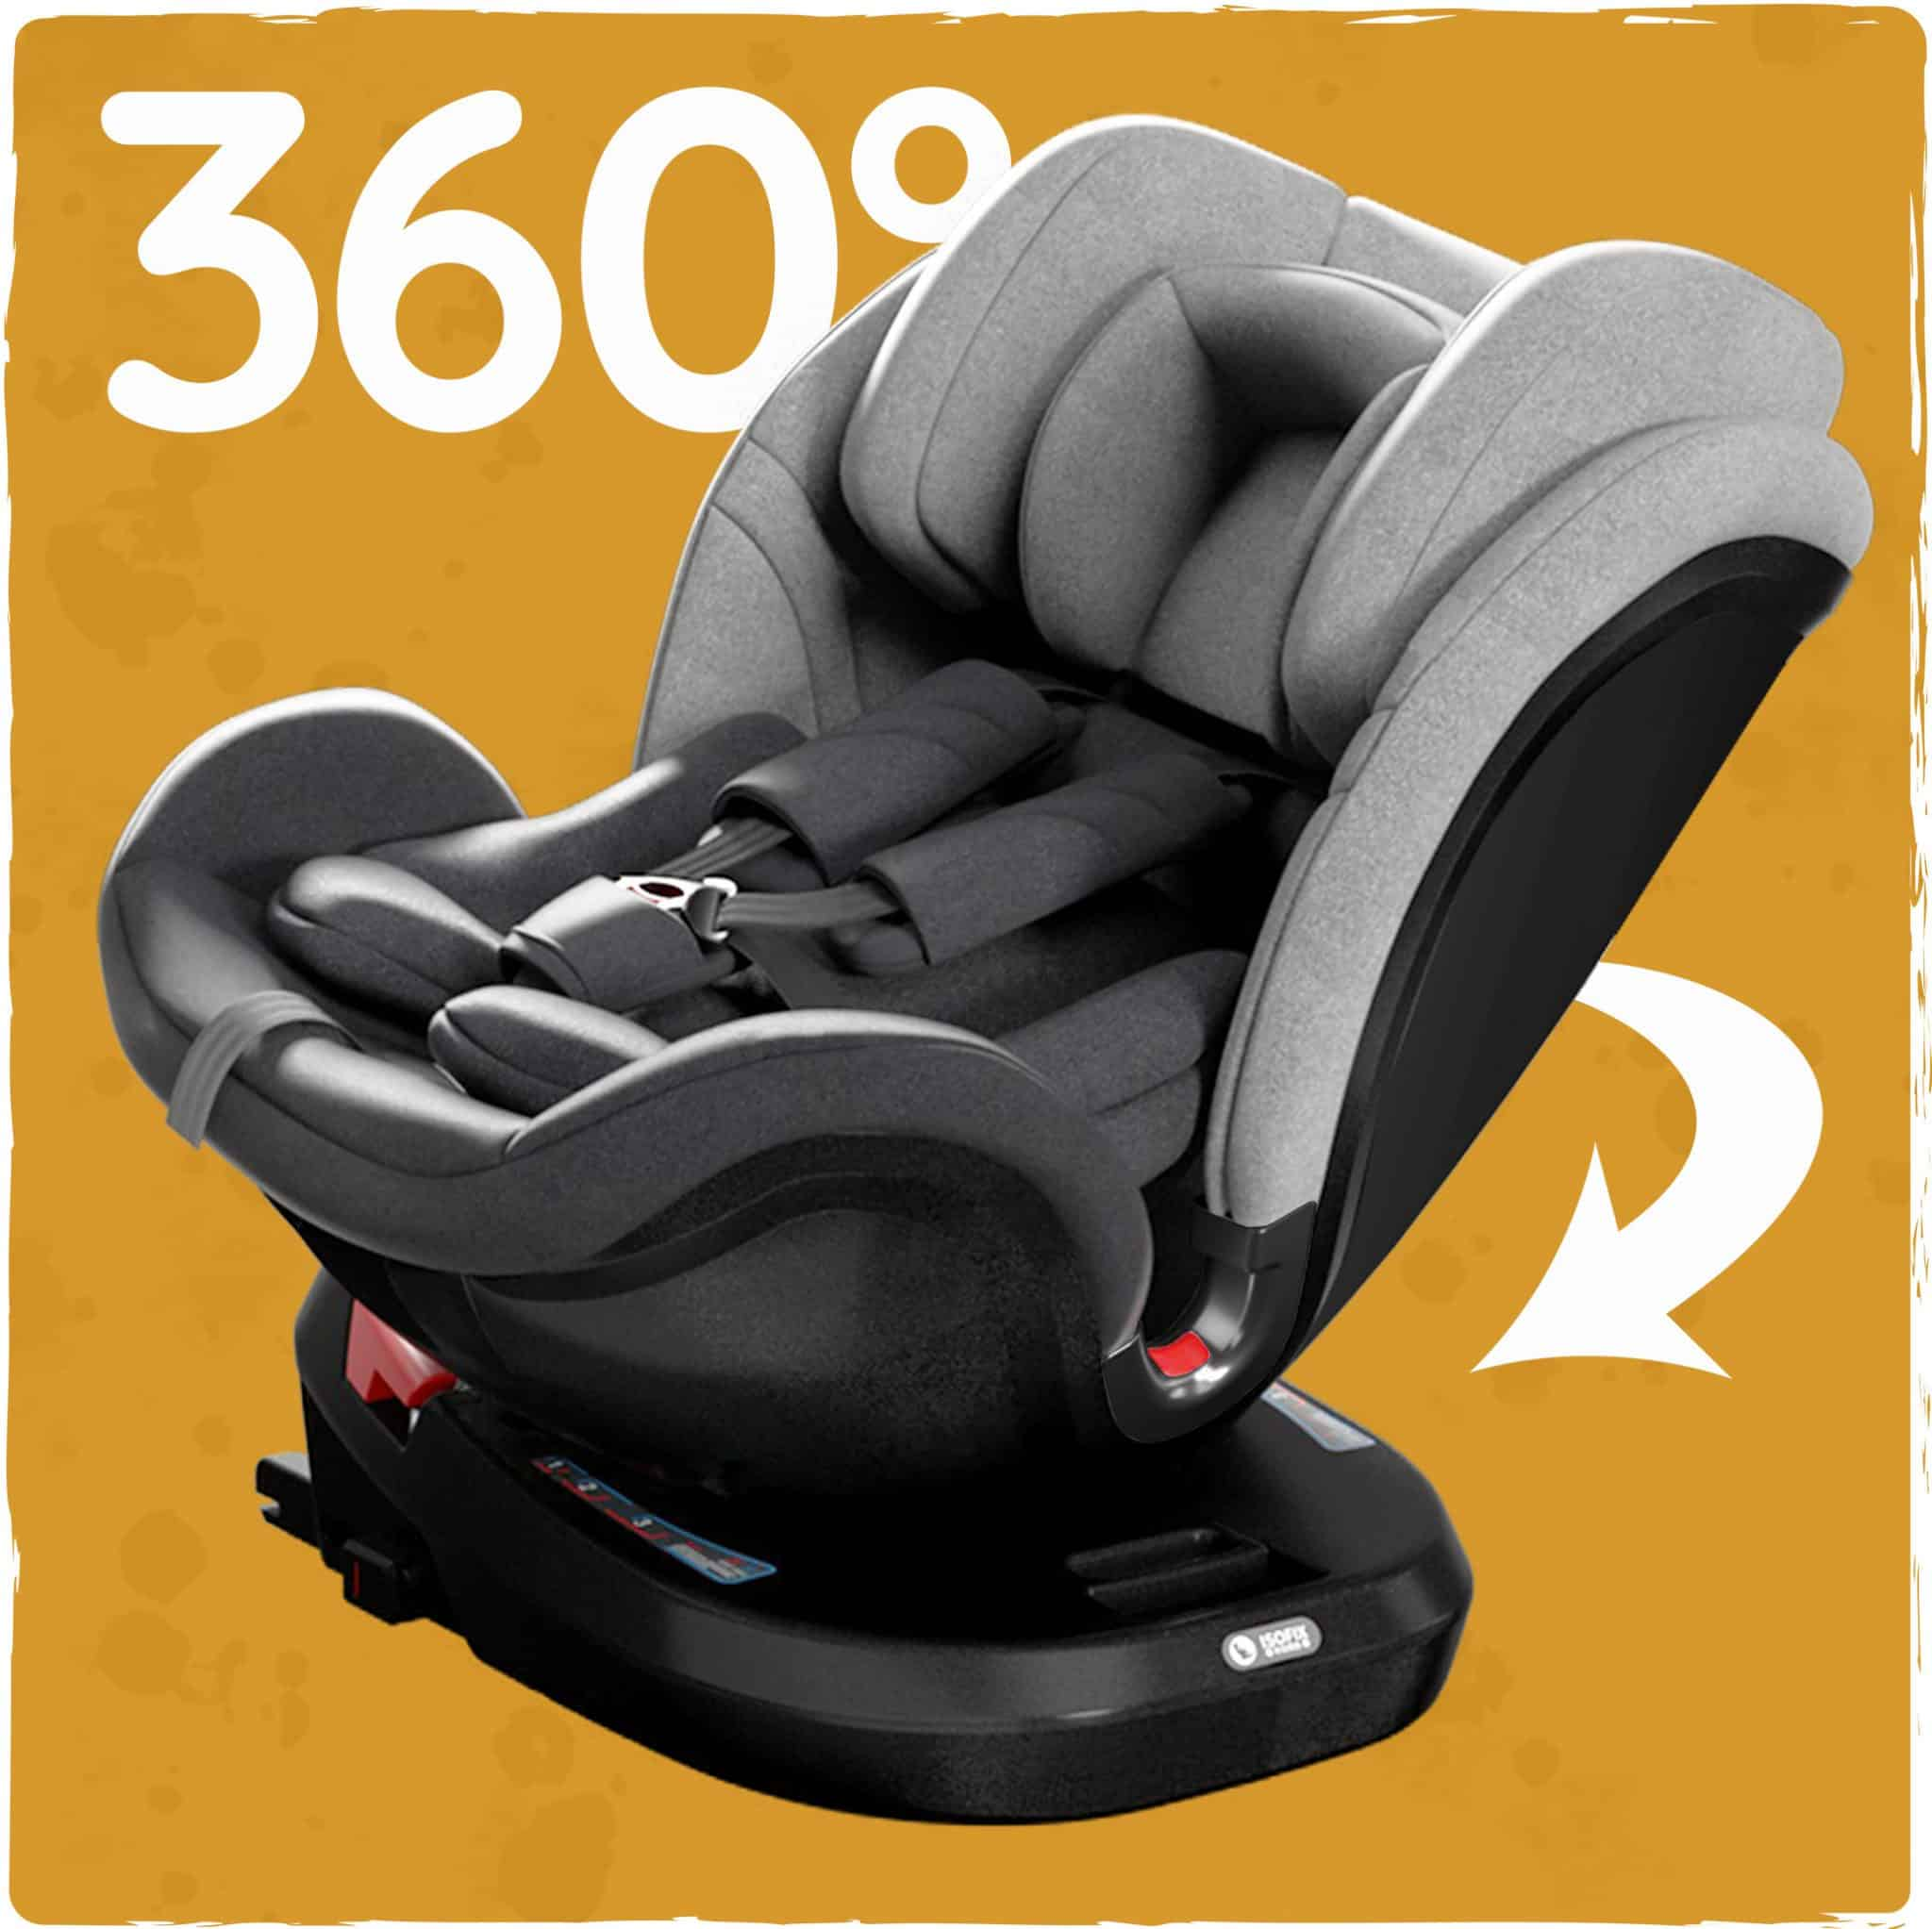 360 degree spin multi-group car seat